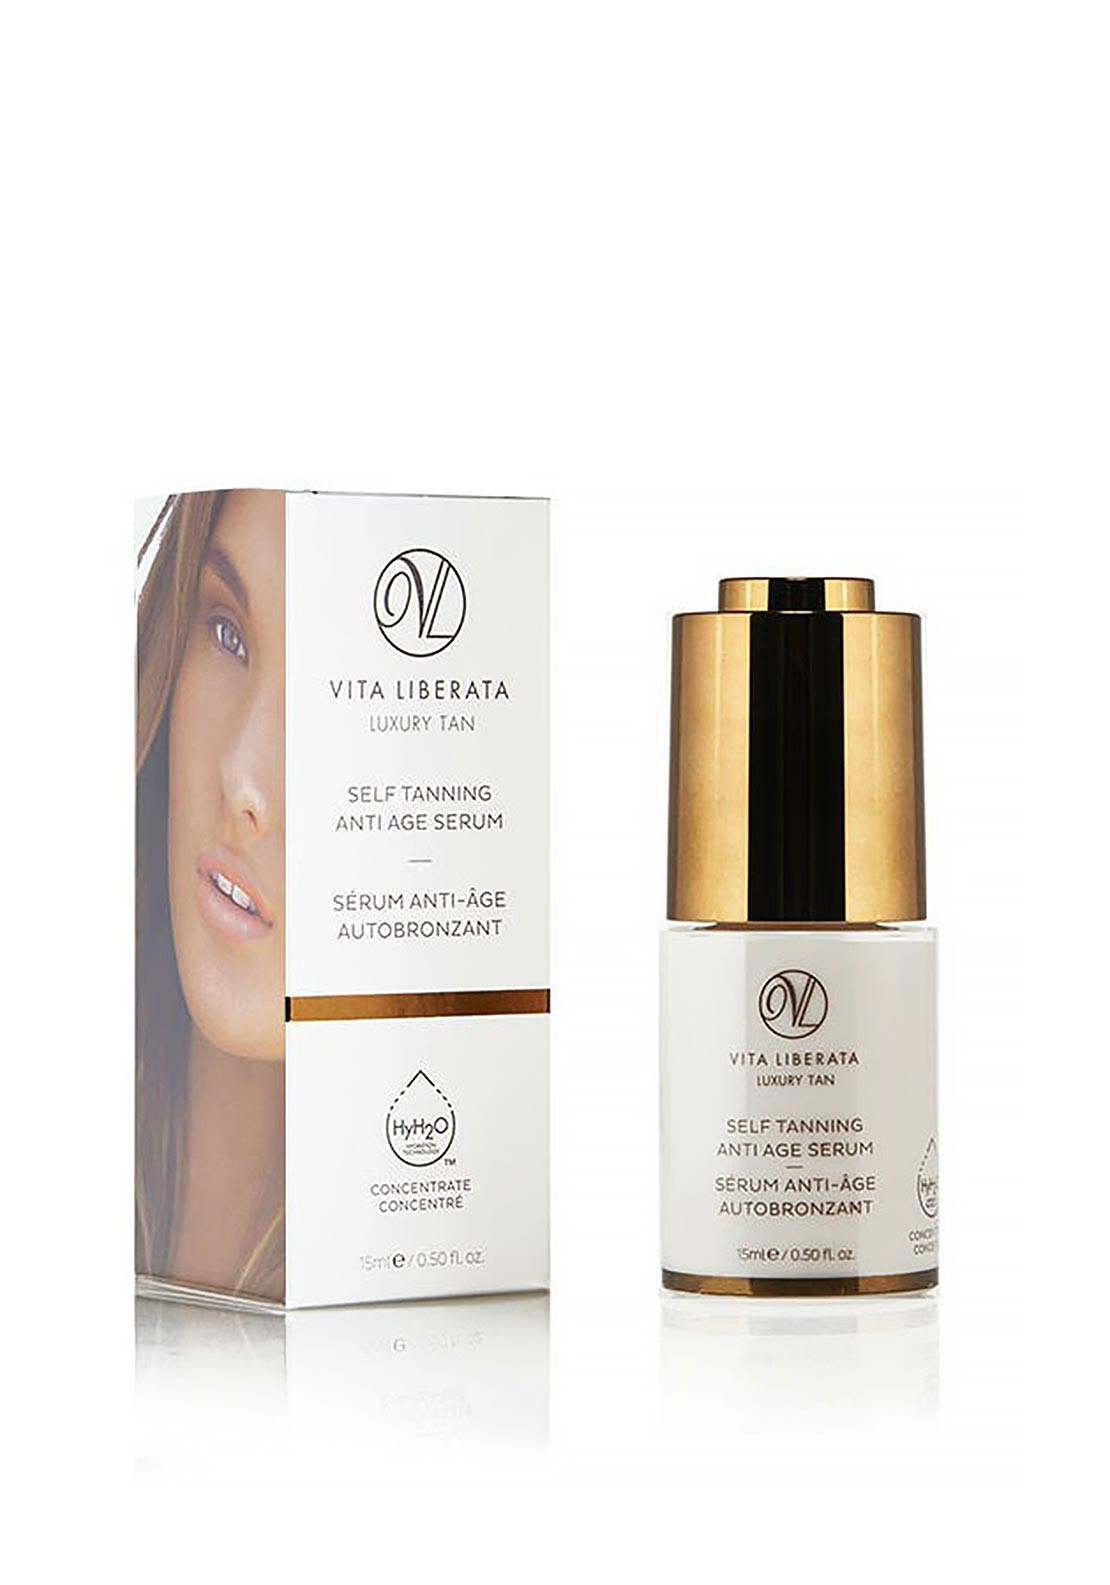 Vita Liberata Self-Tanning Anti Age Serum, 15ml